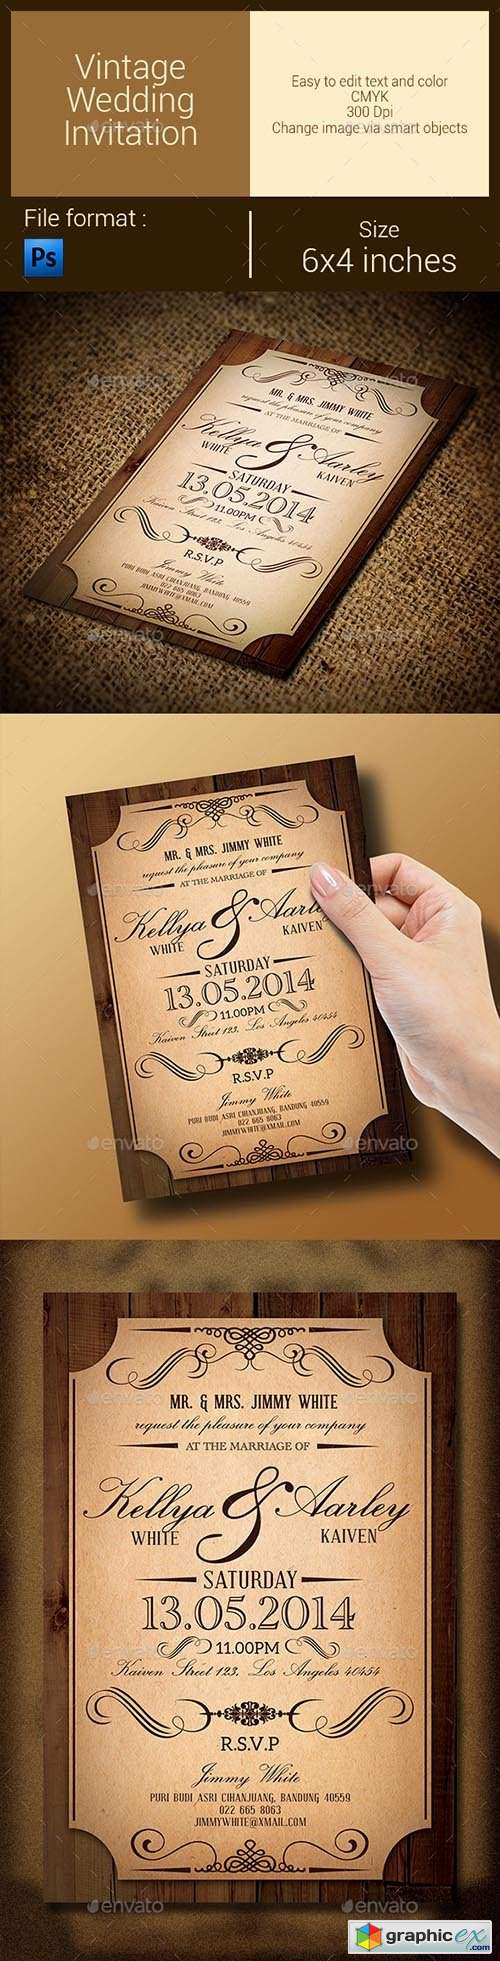 Vintage Wedding Invitation 9615090